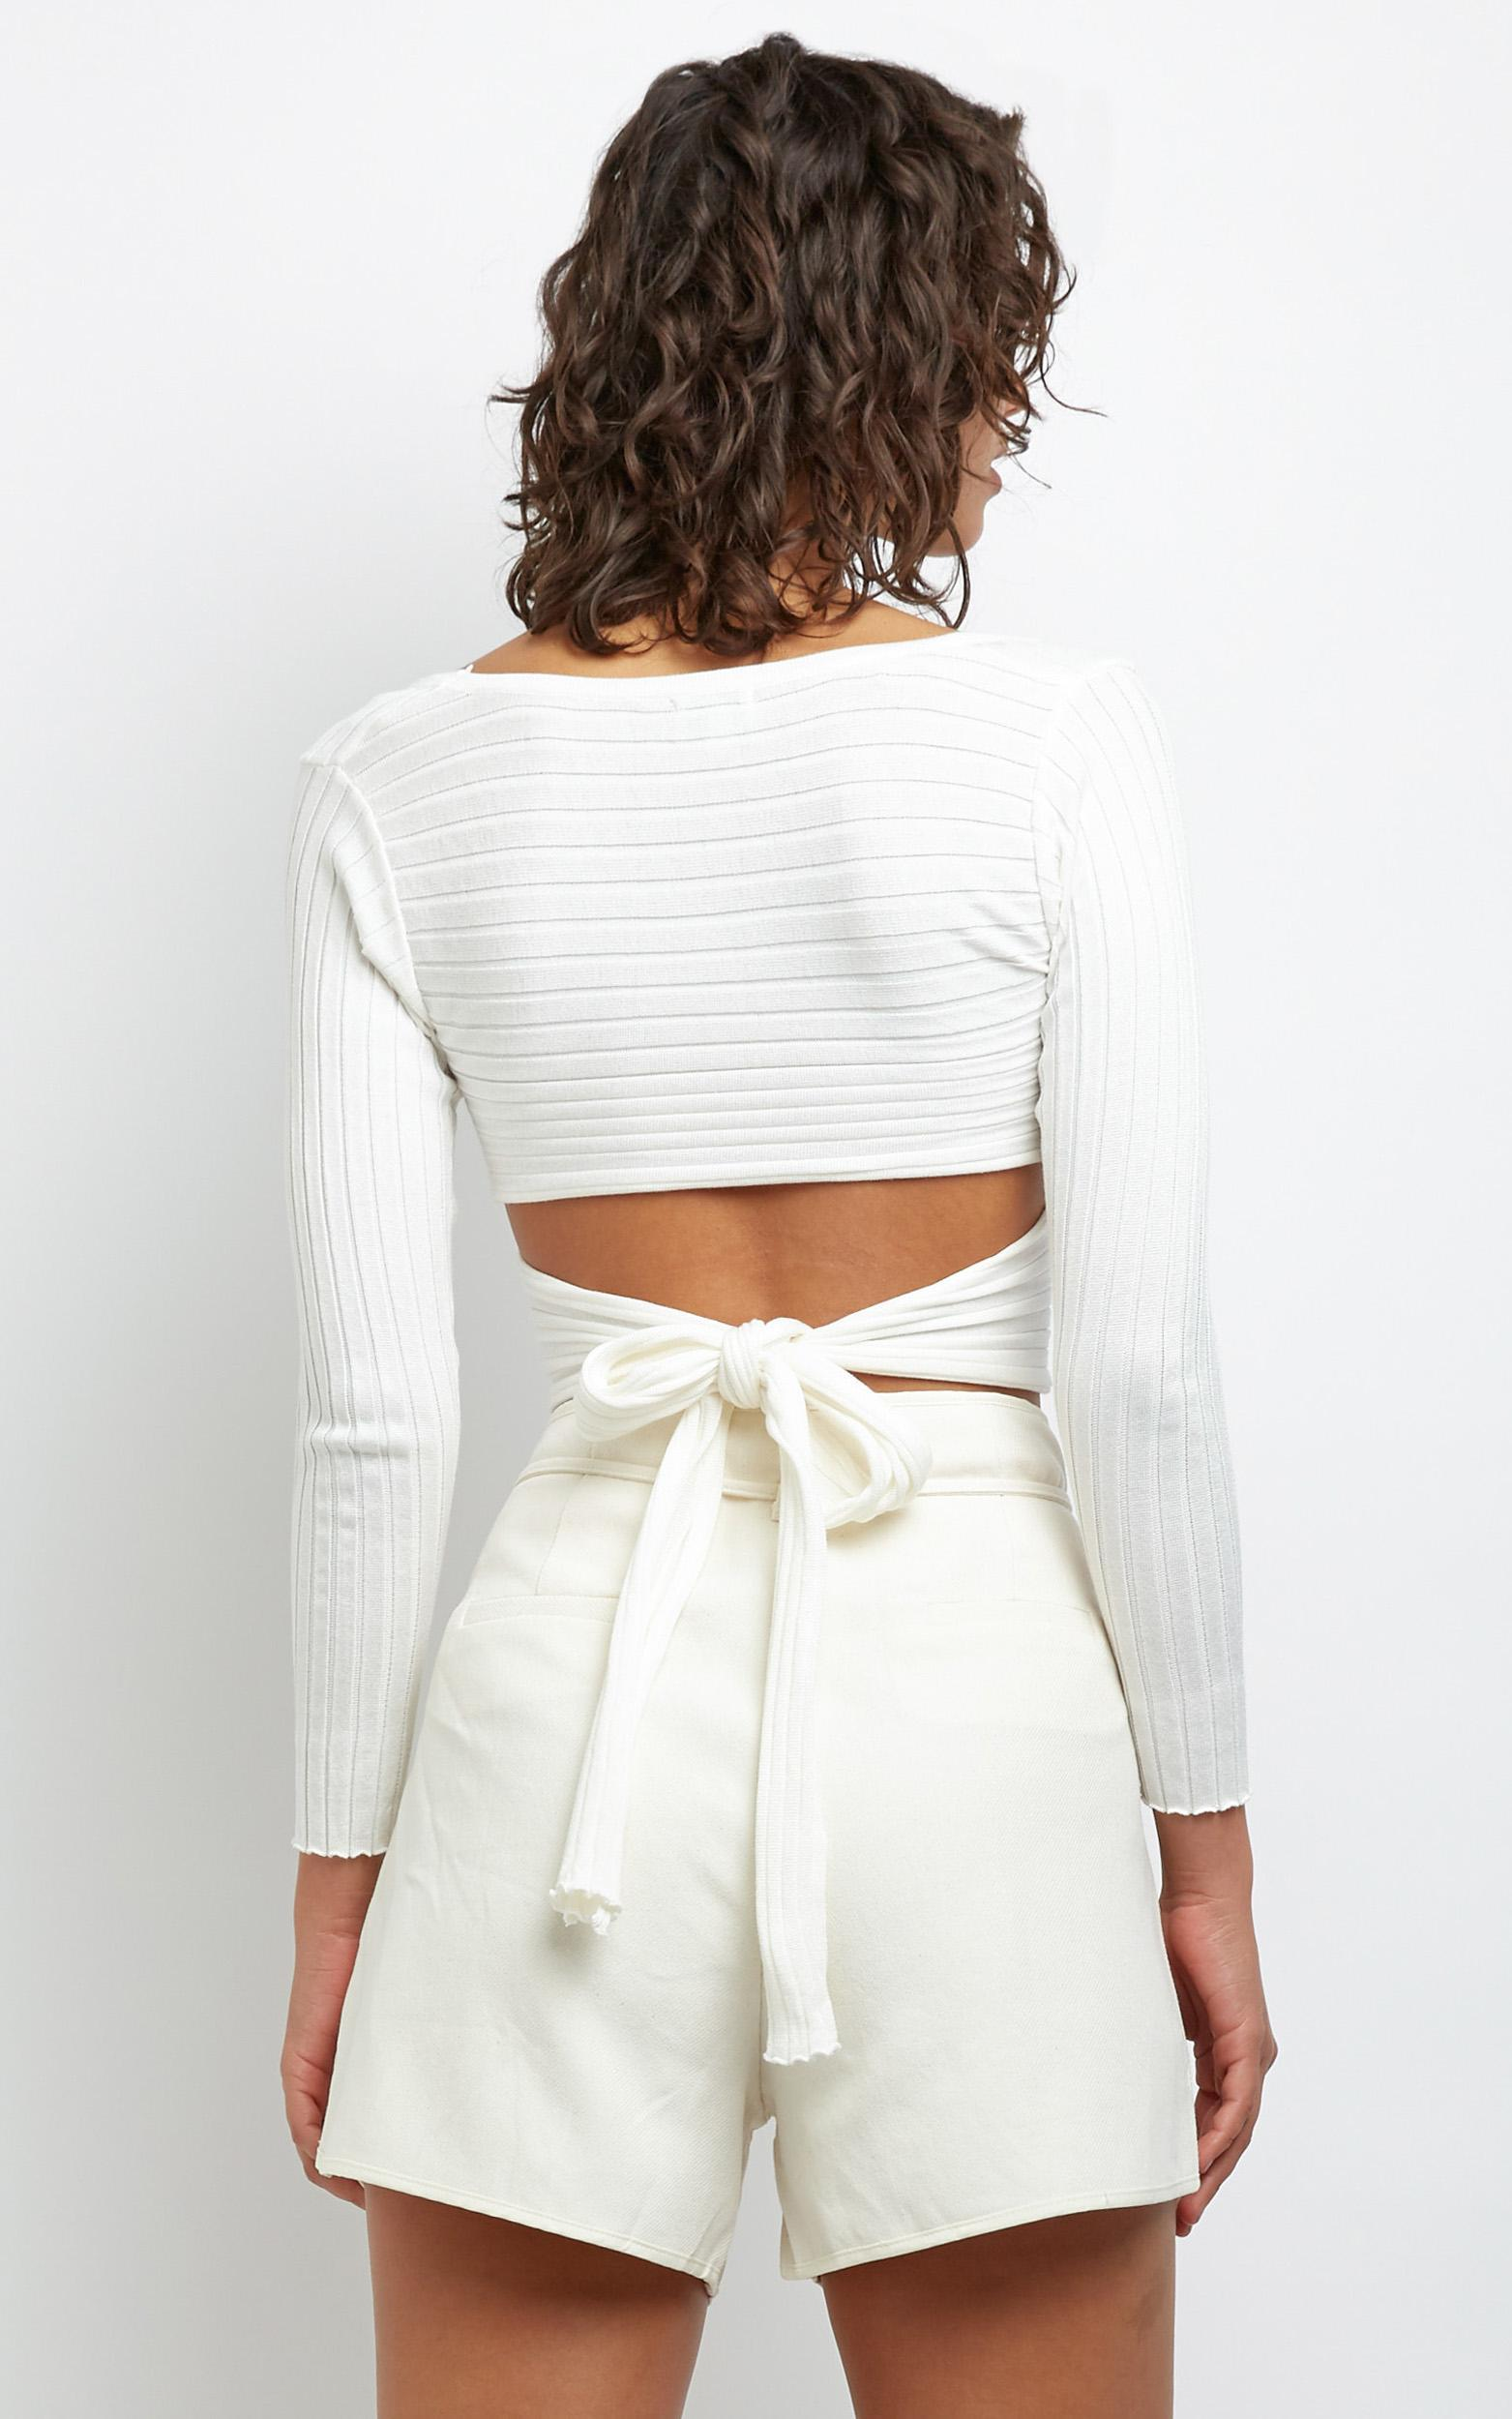 Brennan Knit Top in White - 6 (XS), WHT1, hi-res image number null